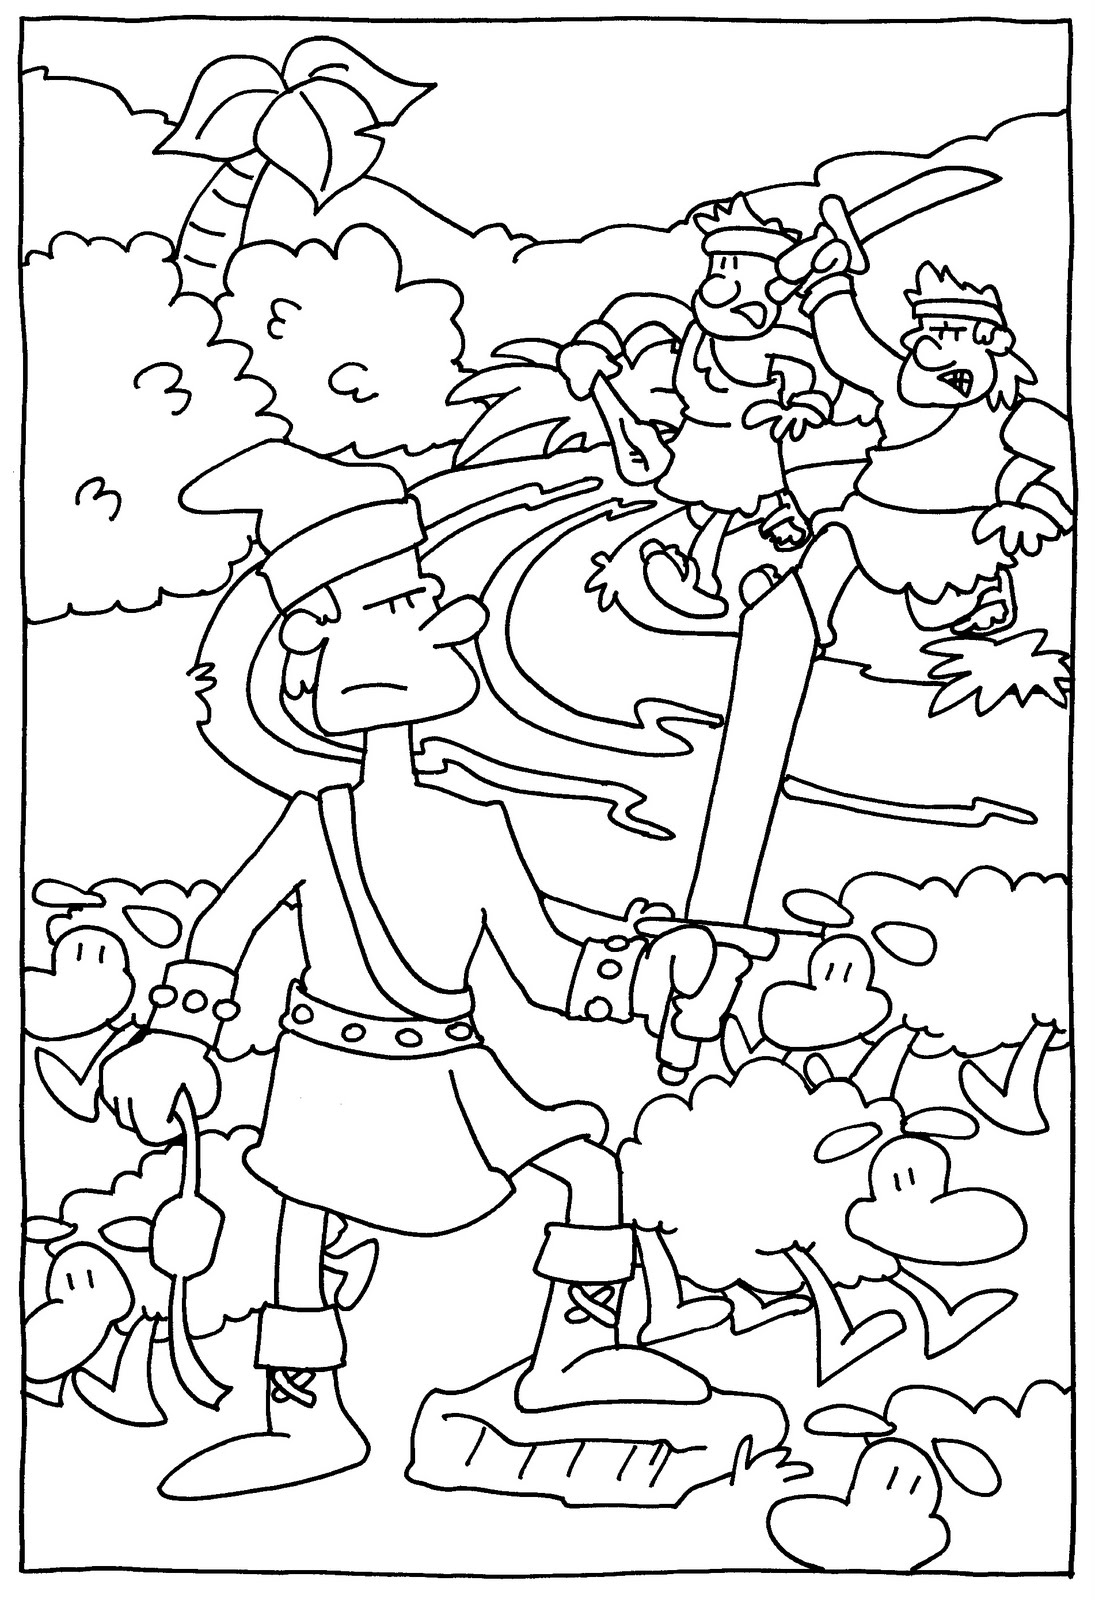 book of mormon coloring pages - photo#21